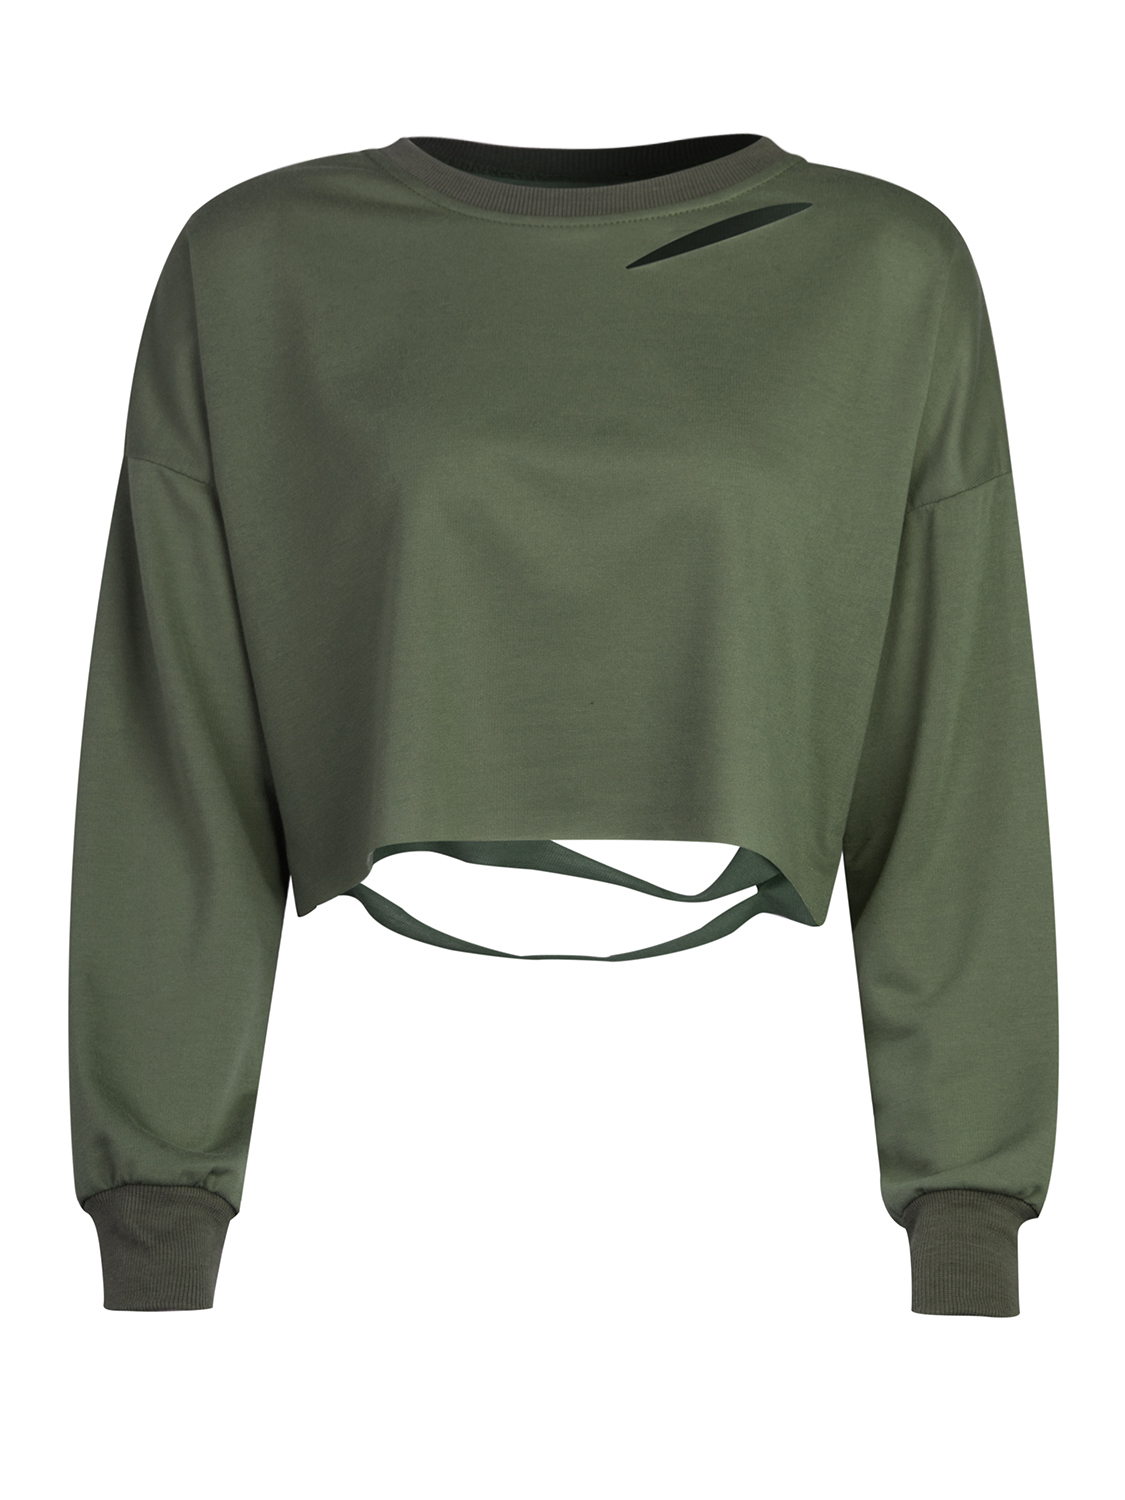 2810d6cf88b2f Shop Military Green Ripped Drop Shoulder Cropped Sweatshirt from choies.com  .Free shipping Worldwide. 18.99